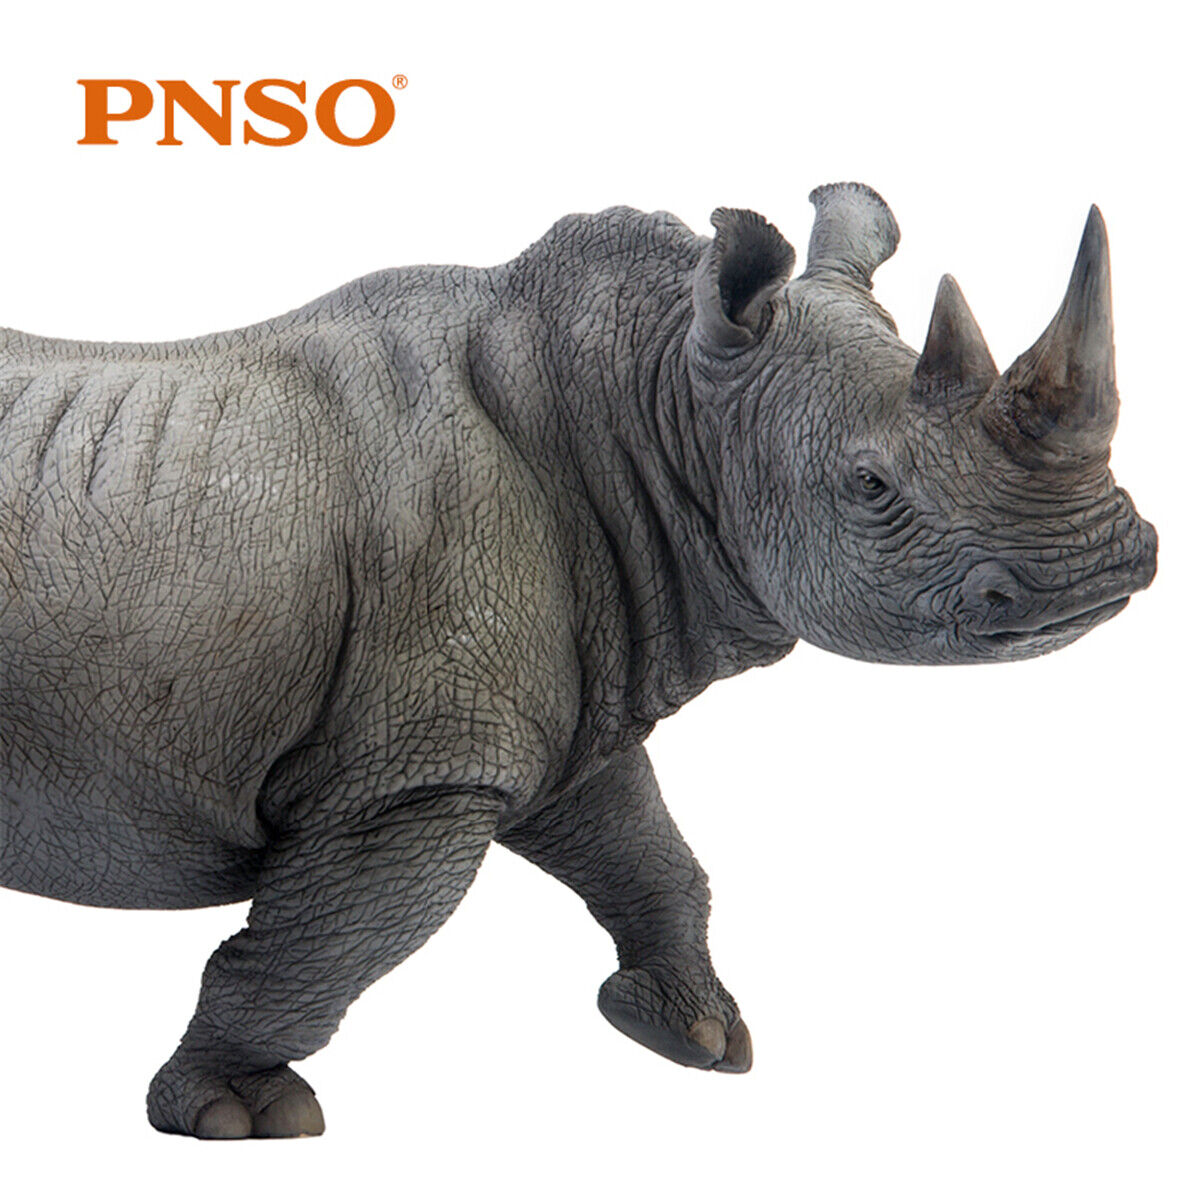 PNSO Africa bianca Rhinoceros Model Rhinos Animal Figure Decor Collector Kid Toy